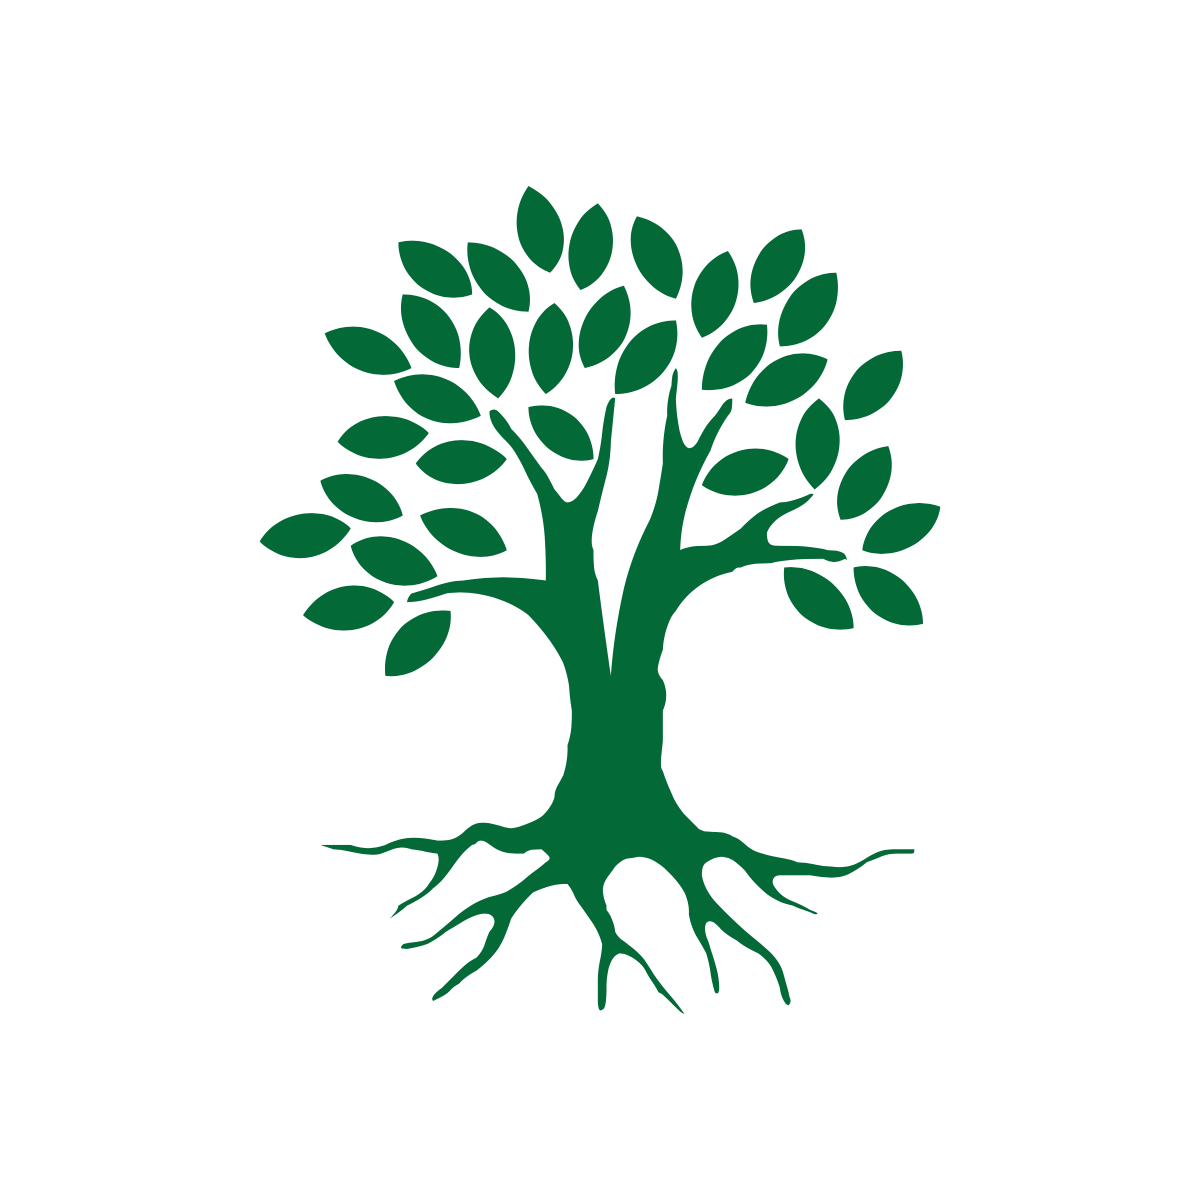 Tree icon from Noun Project